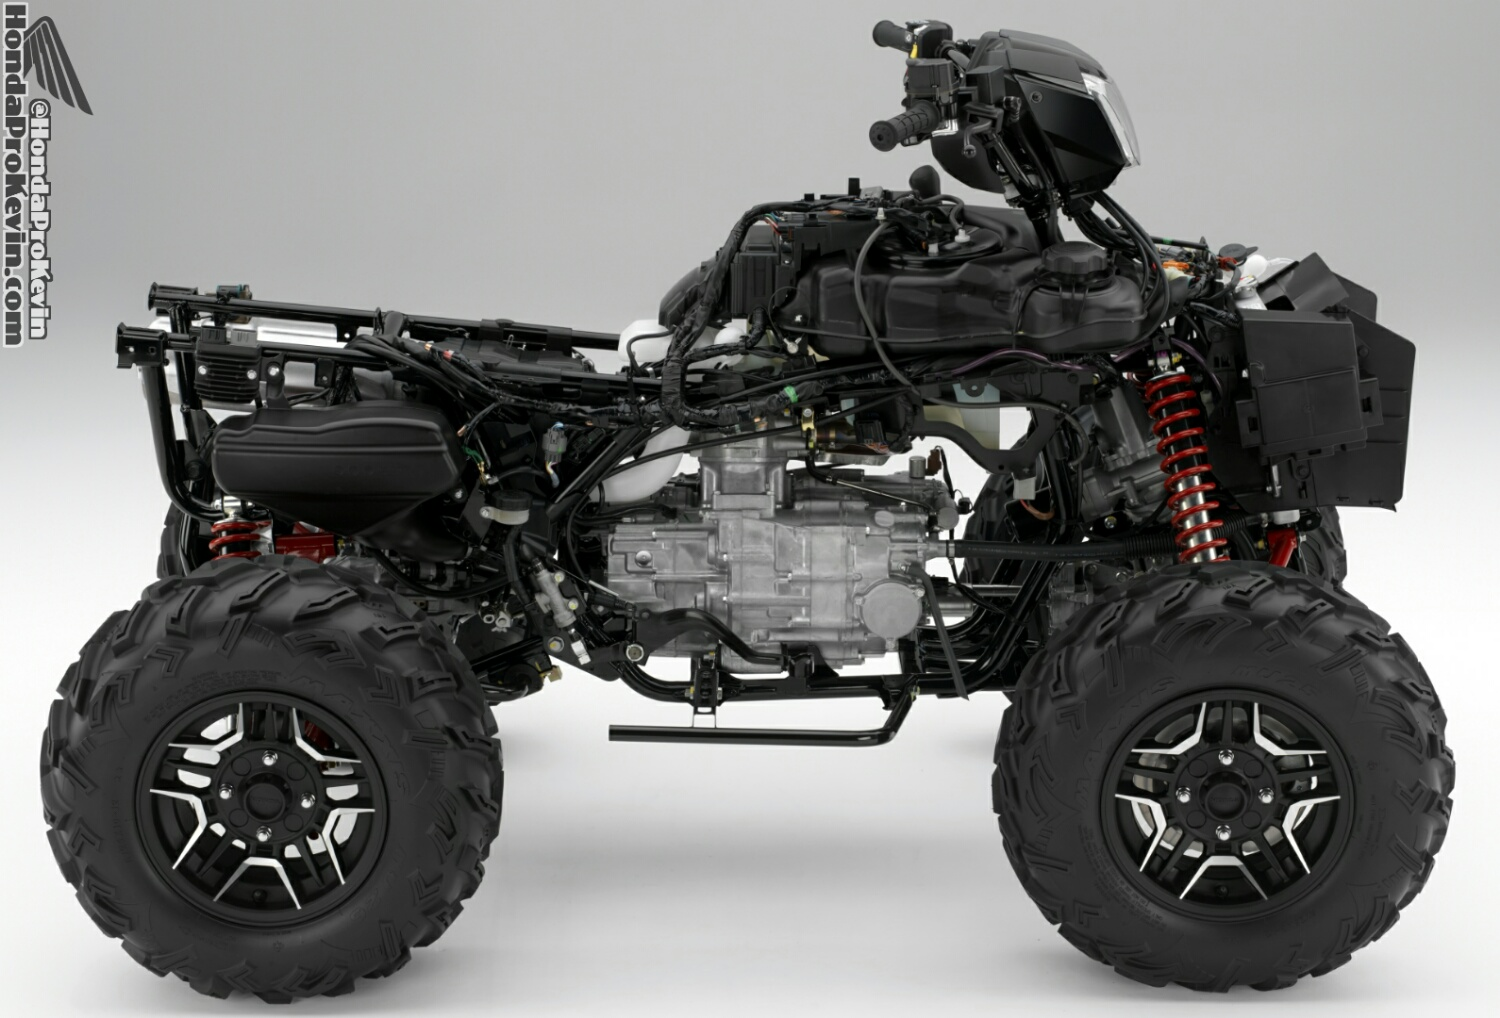 2020 Honda Rubicon 520 ATV Frame / Engine - Review / Specs / Price / HP & TQ Performance Rating